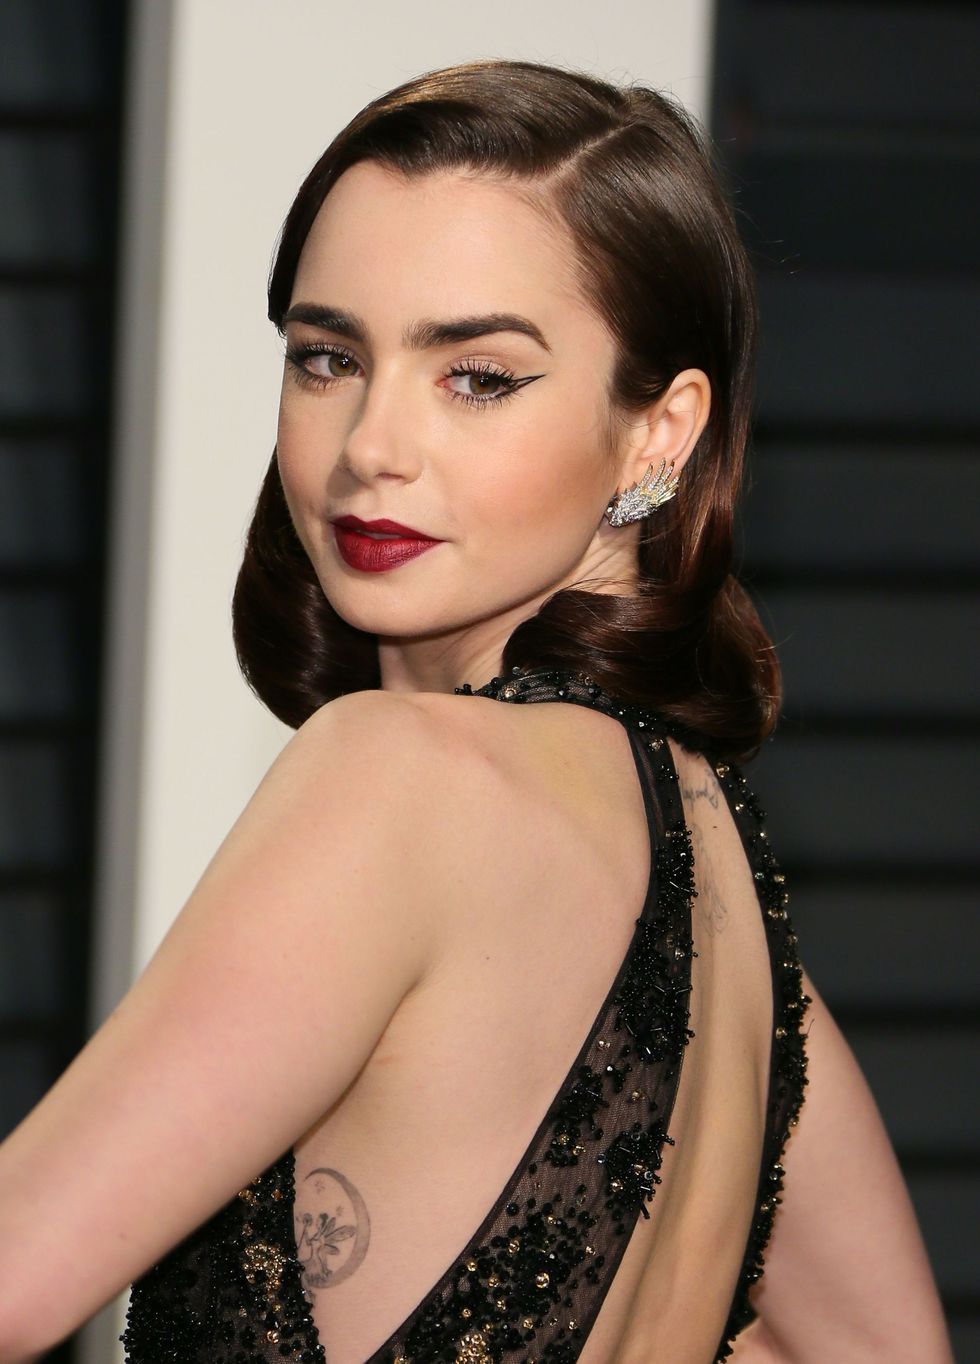 HARPER'S BAZAAR    Lily Collins Wore The Easiest Eyeliner Trend At The Oscars